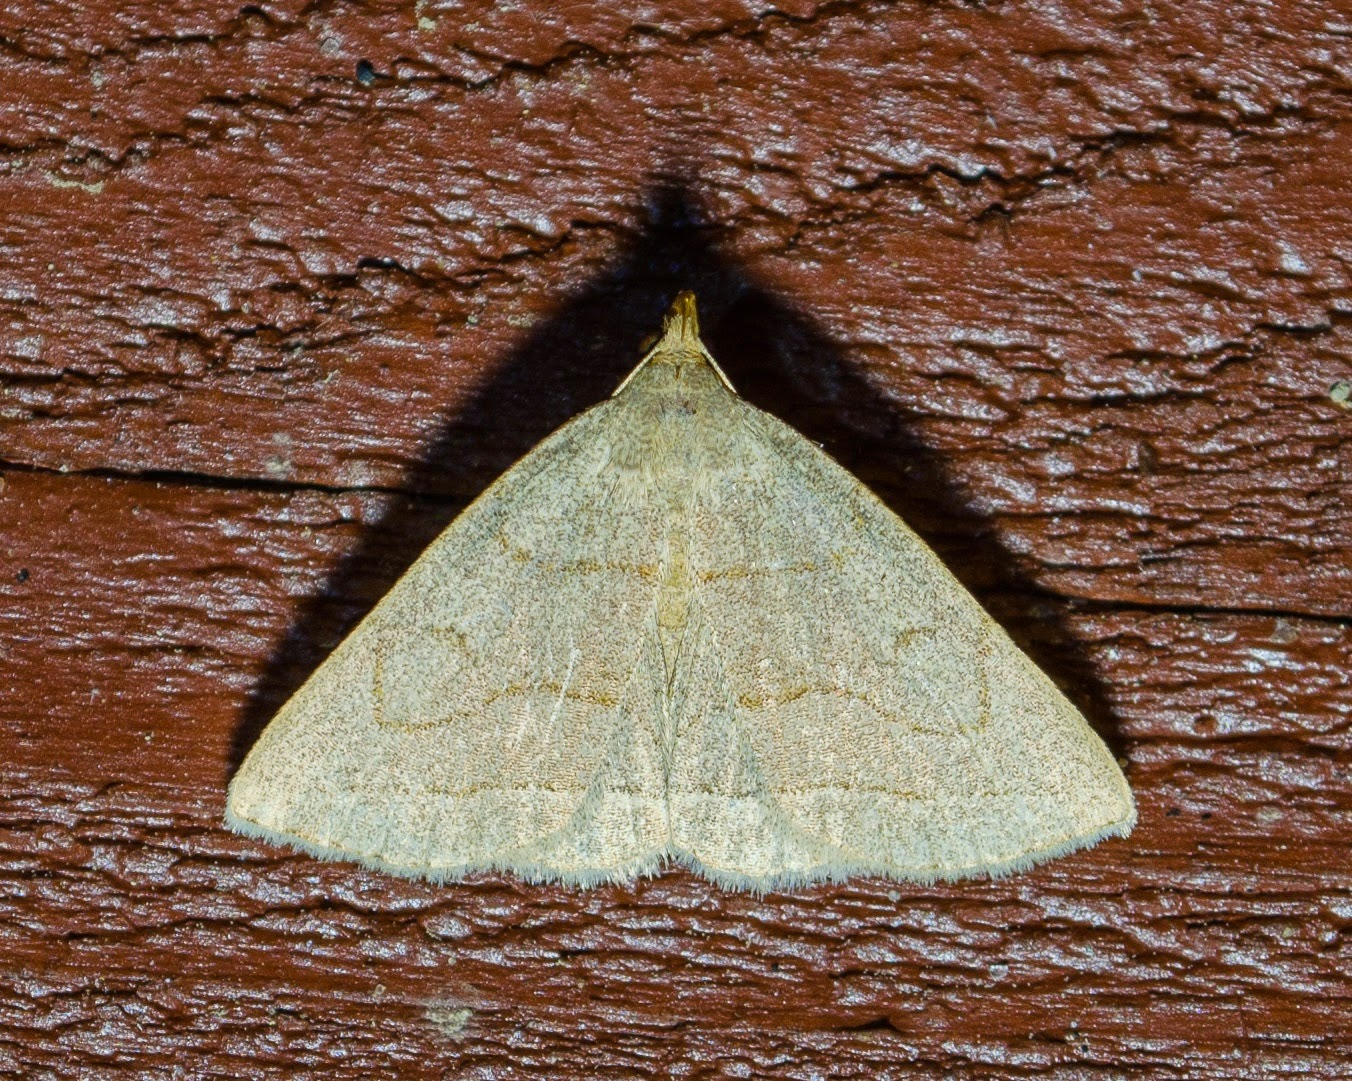 Grayish Fan-Foot, Zanclognatha pedipilalis